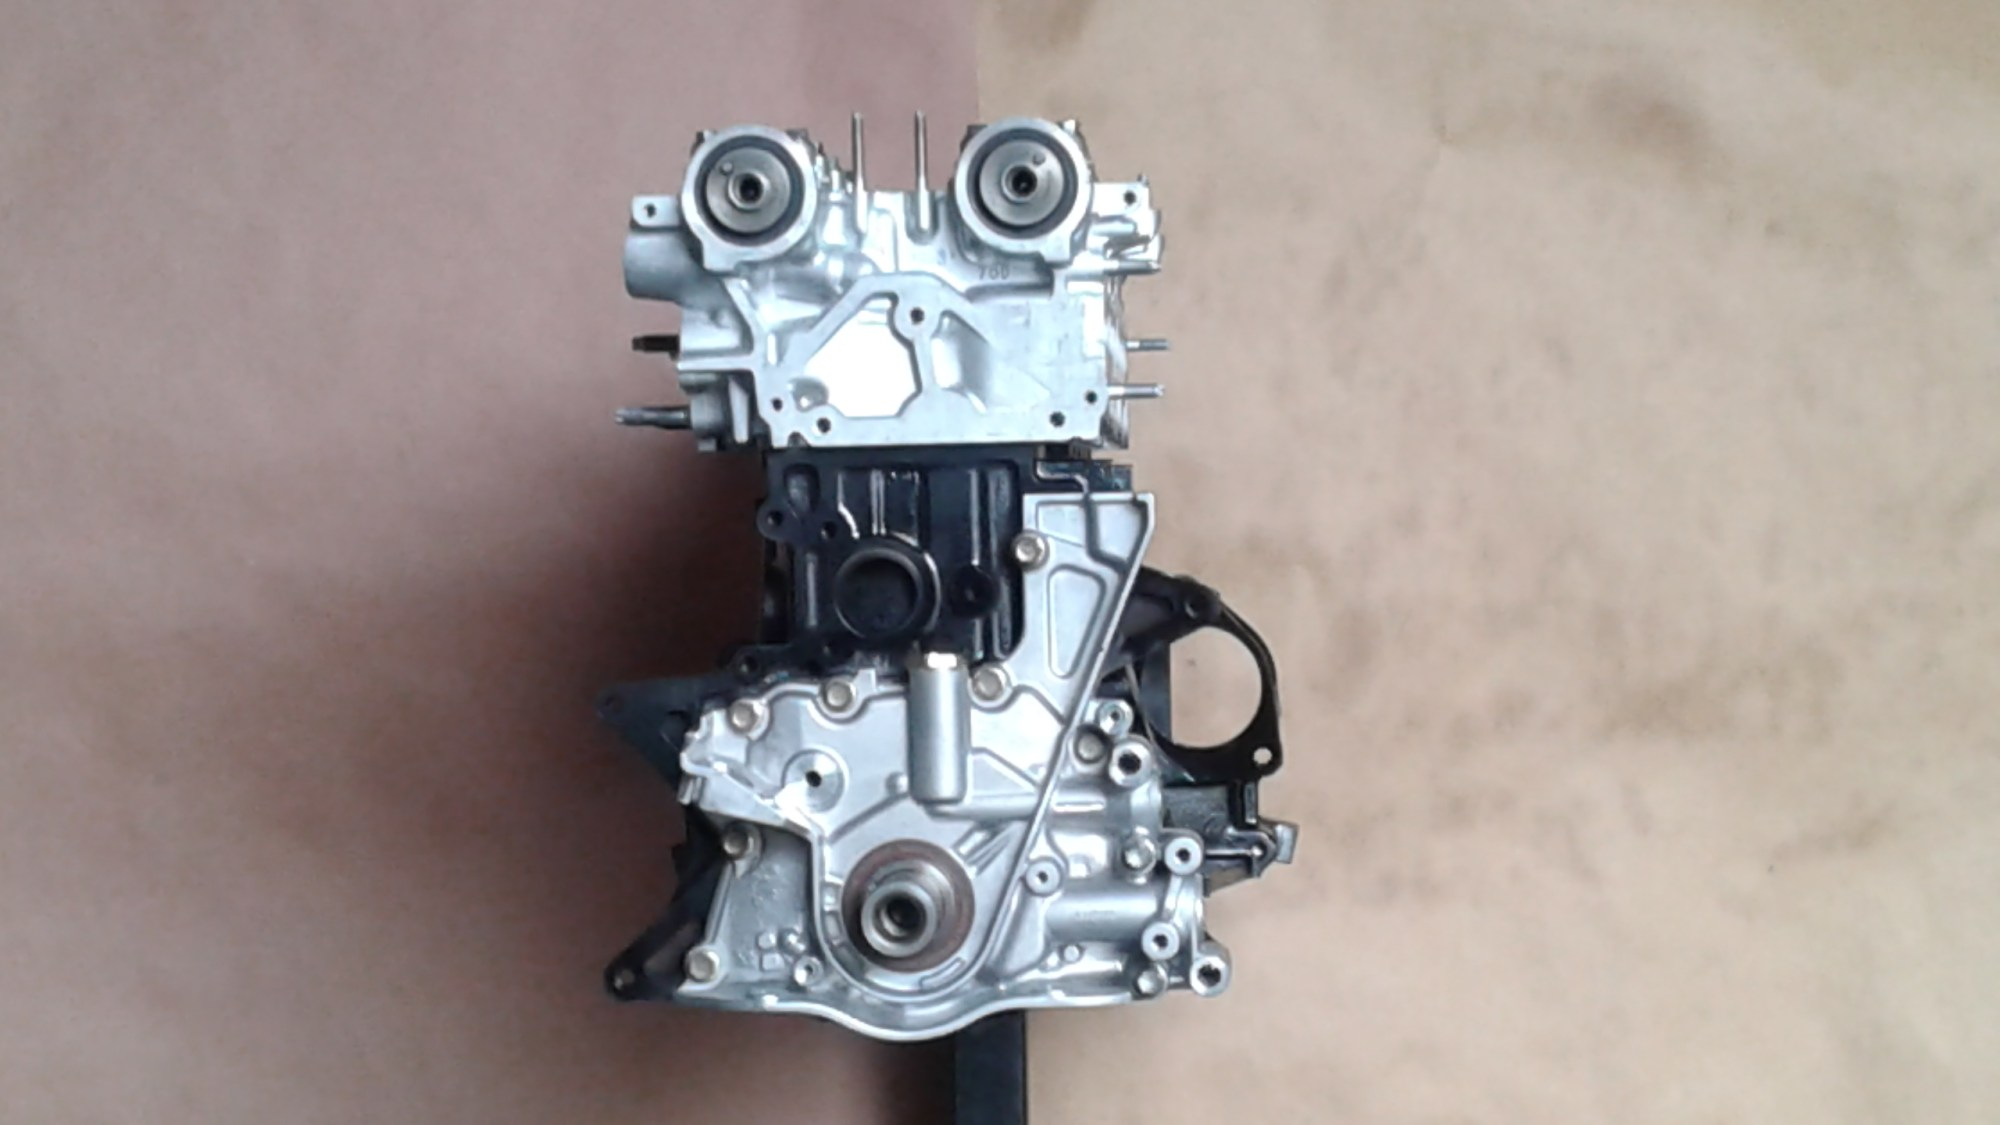 hight resolution of pictures of engines are for only reference only not actual product